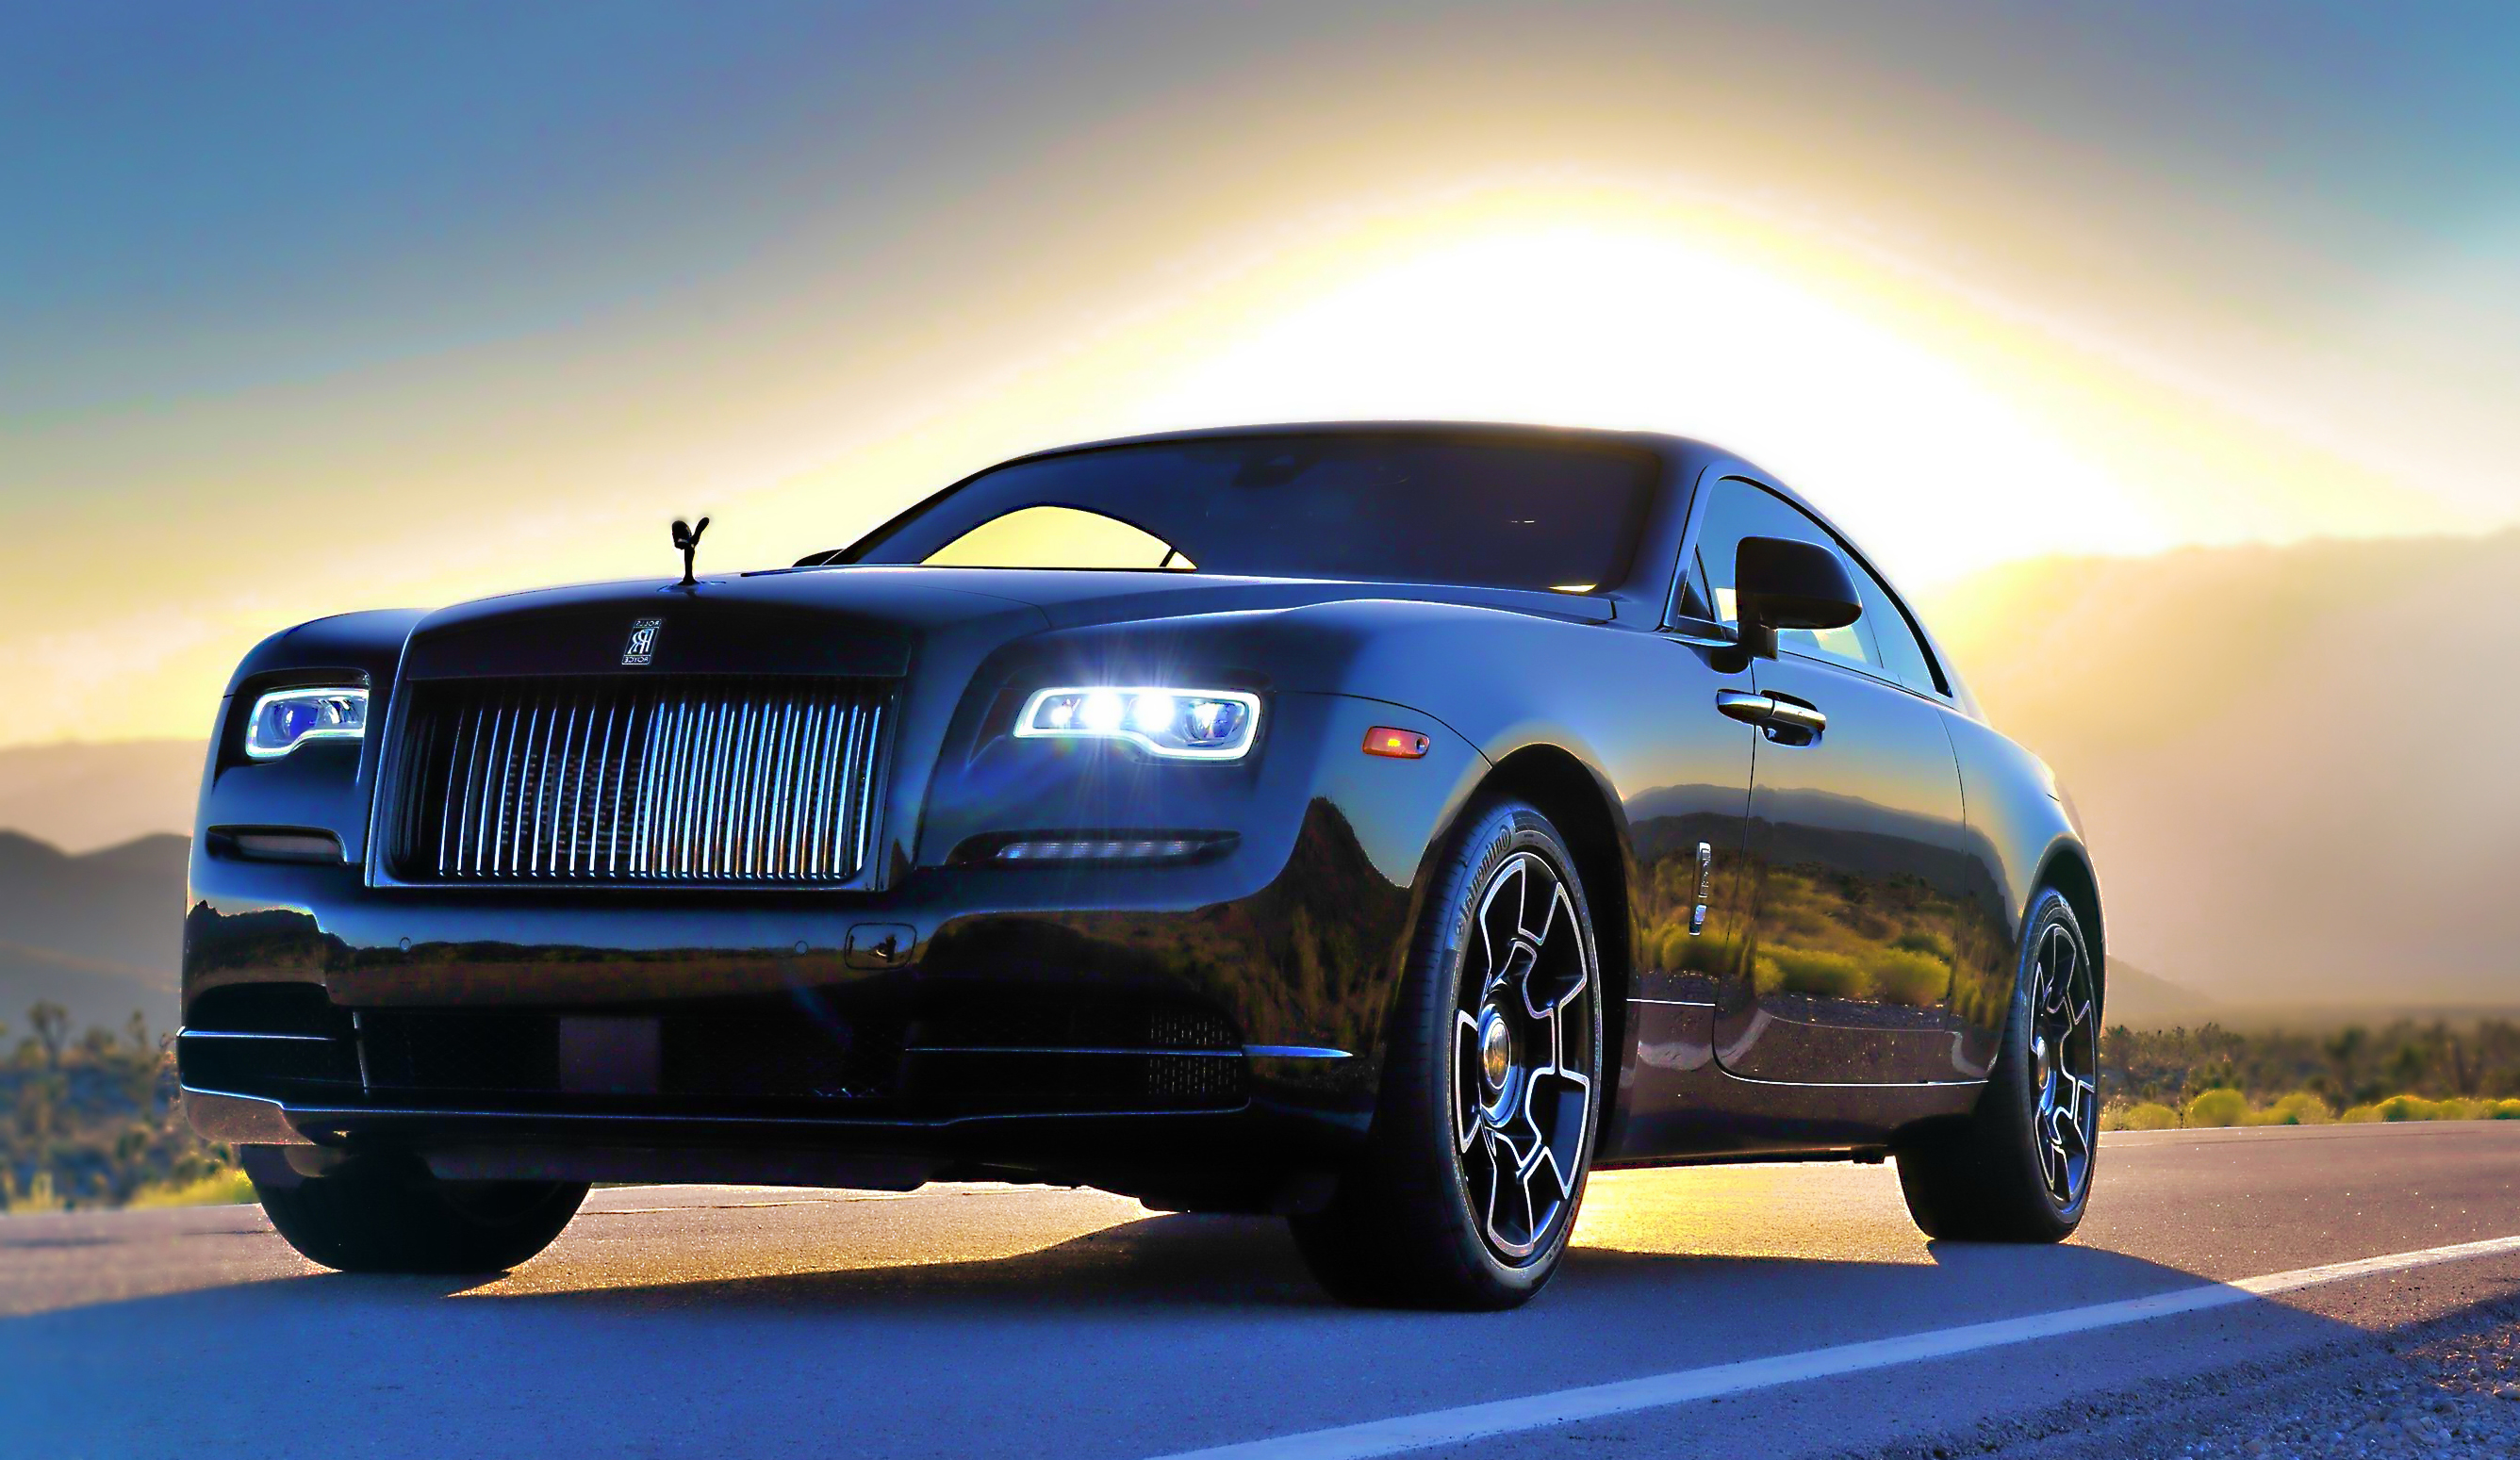 Rolls Royce Phantom High Quality Picture